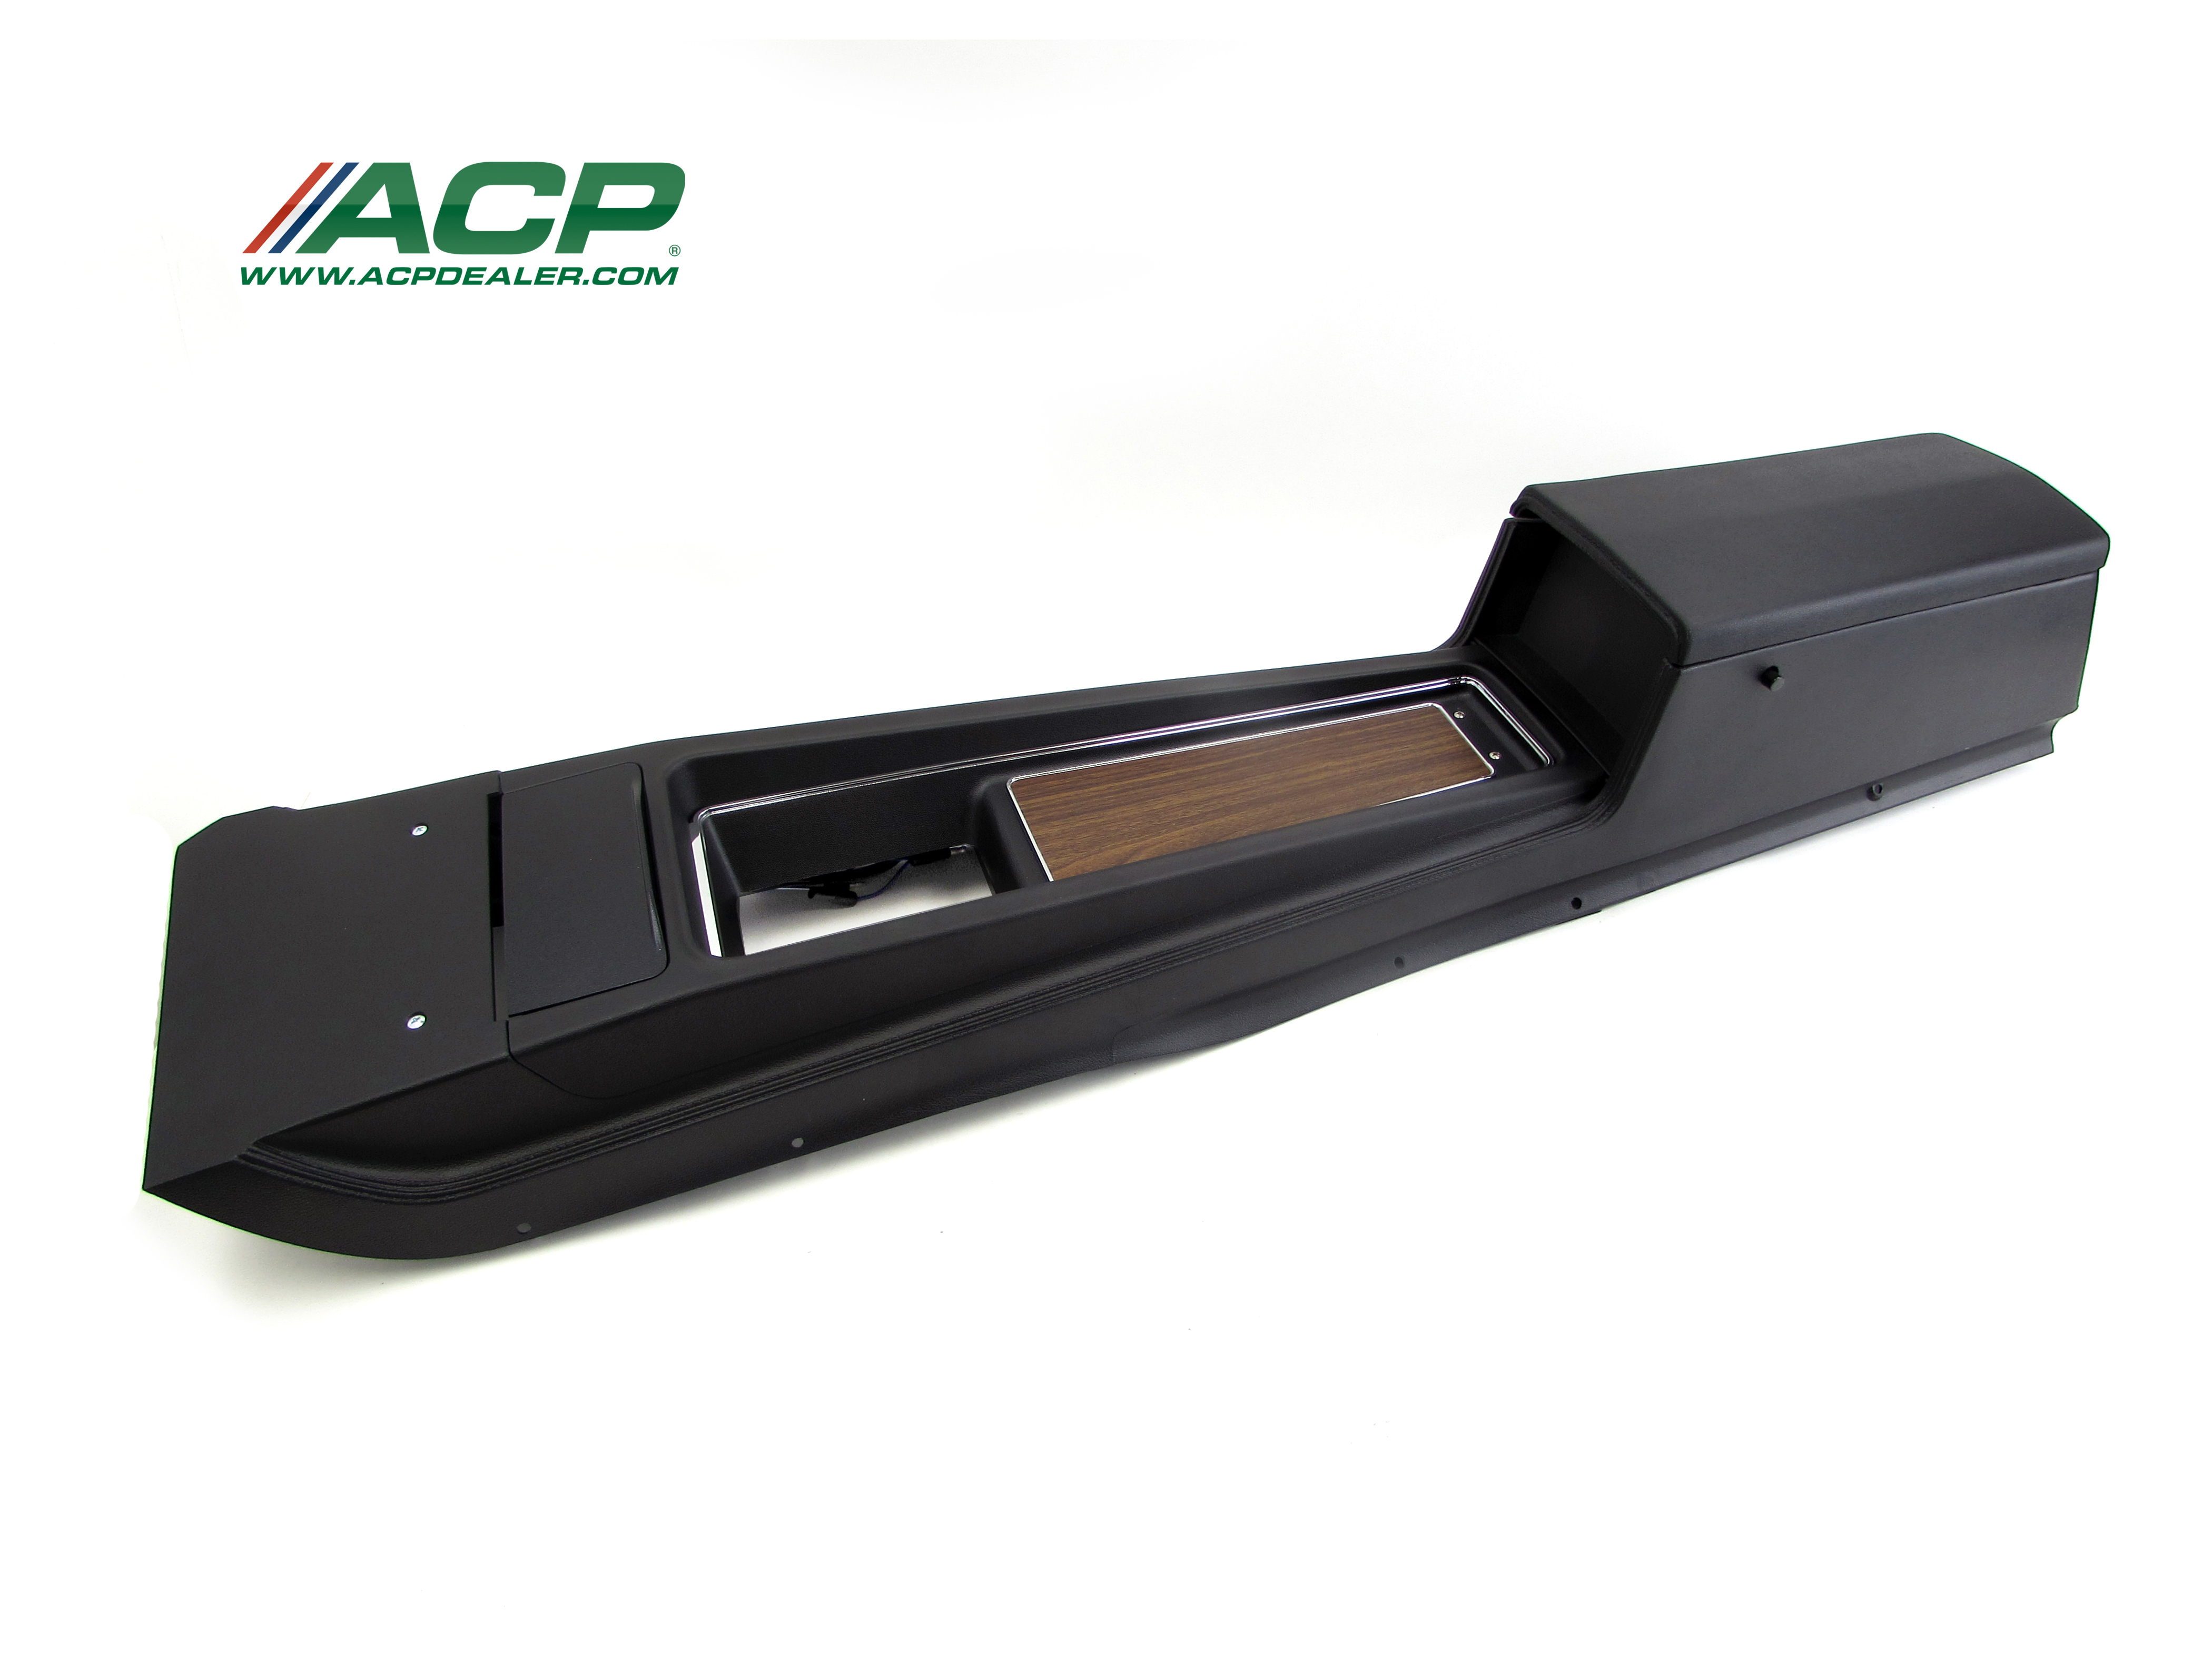 1970 Mustang Console Assembly  New Reproduction W Standard Transmission Black in Color W/Woodgrain Insert